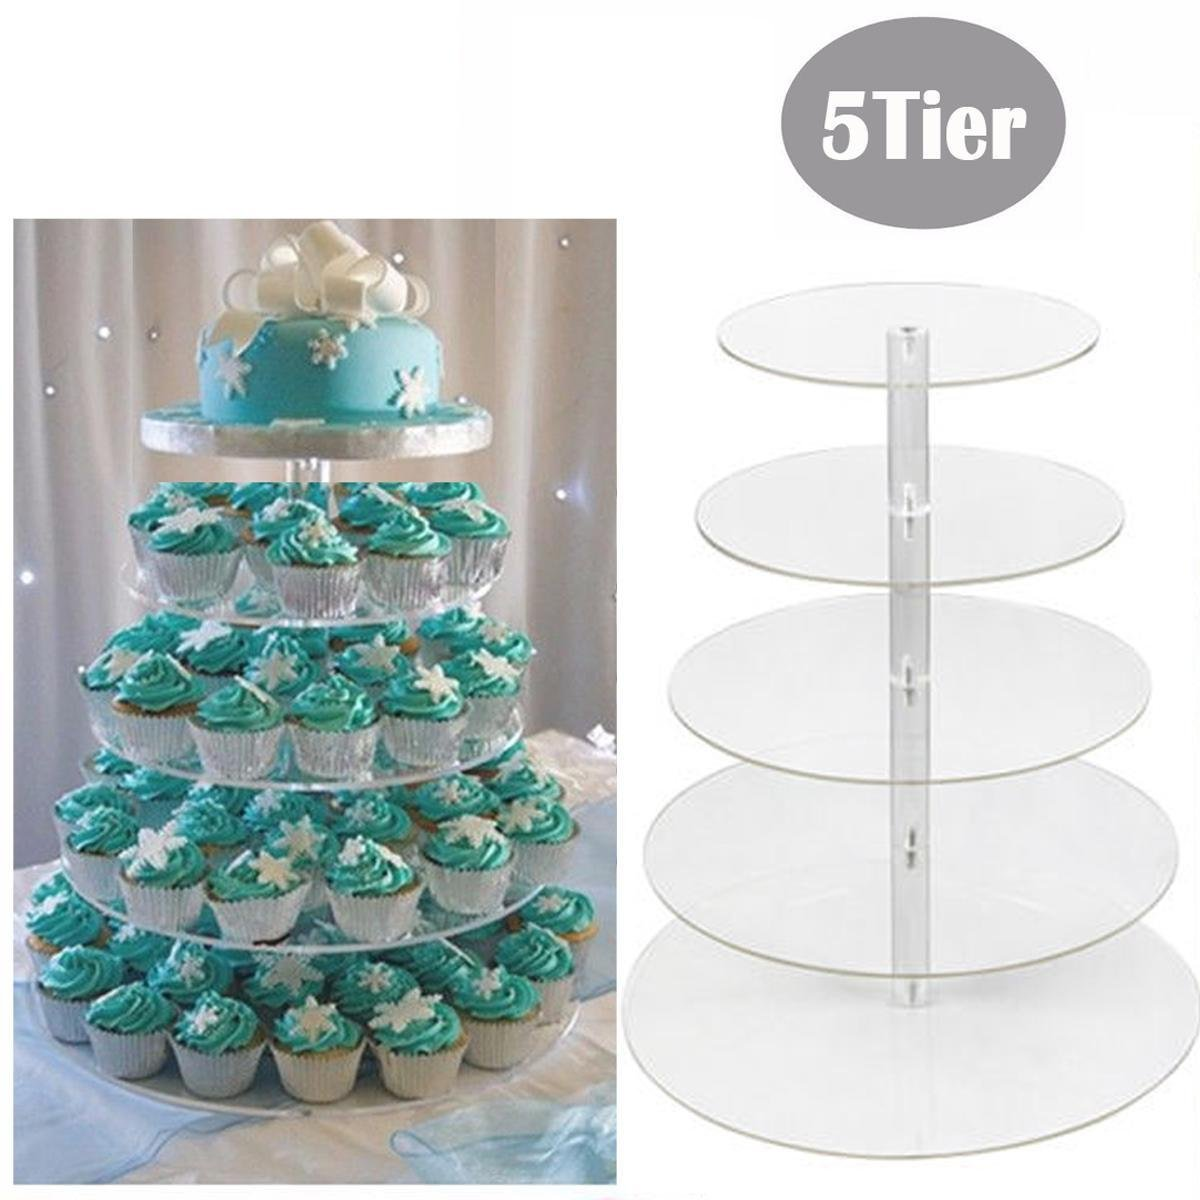 Foshin 5 Tier Cupcake Stand, Crystal Clear Acrylic Cupcake Display Stand Round Tower Cupcake Dessert Display Stand (US Stock)